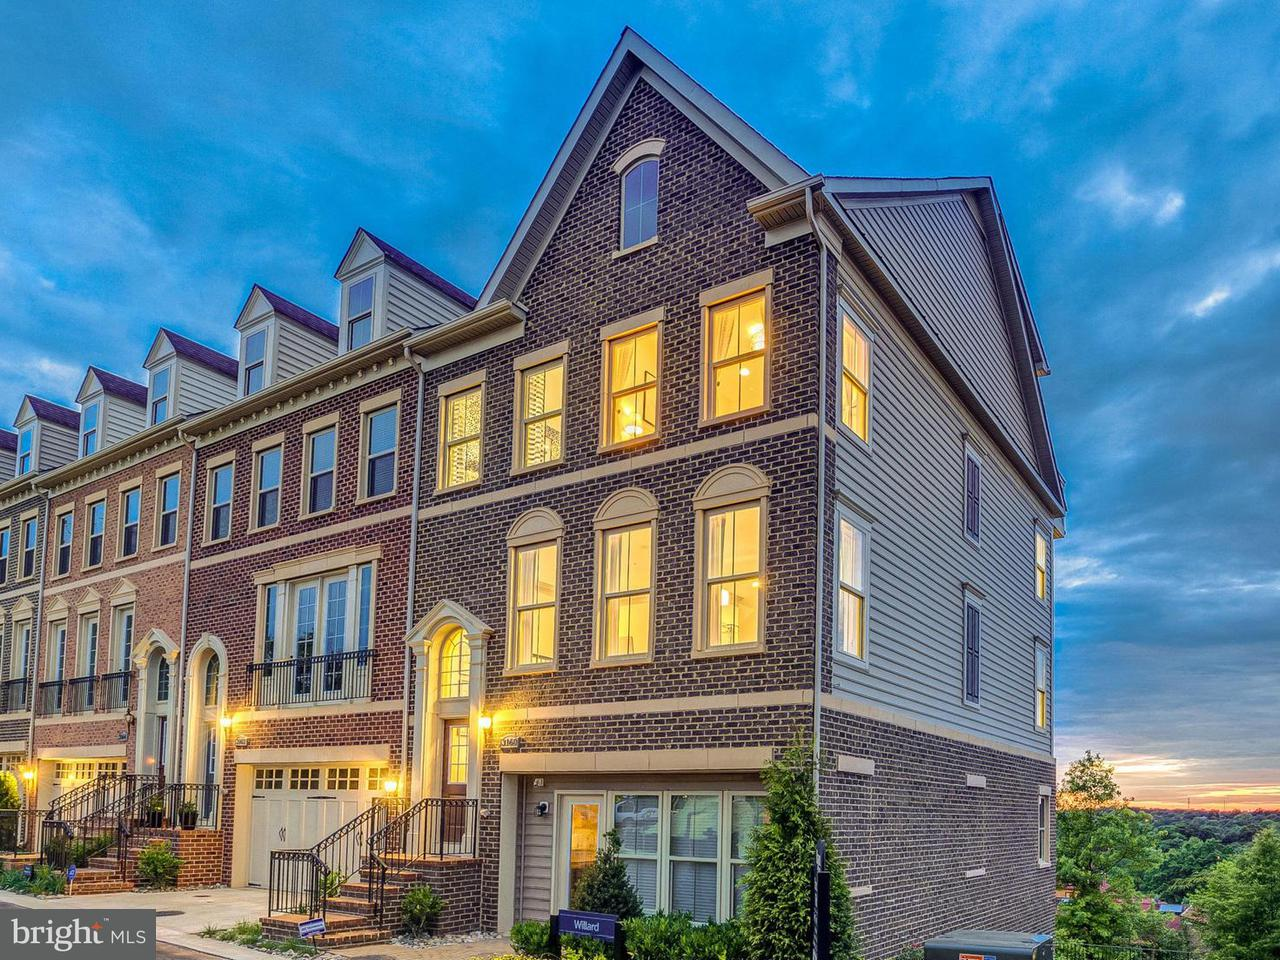 Townhouse for Sale at 2618 COLEMAN LN NE 2618 COLEMAN LN NE Washington, District Of Columbia 20018 United States